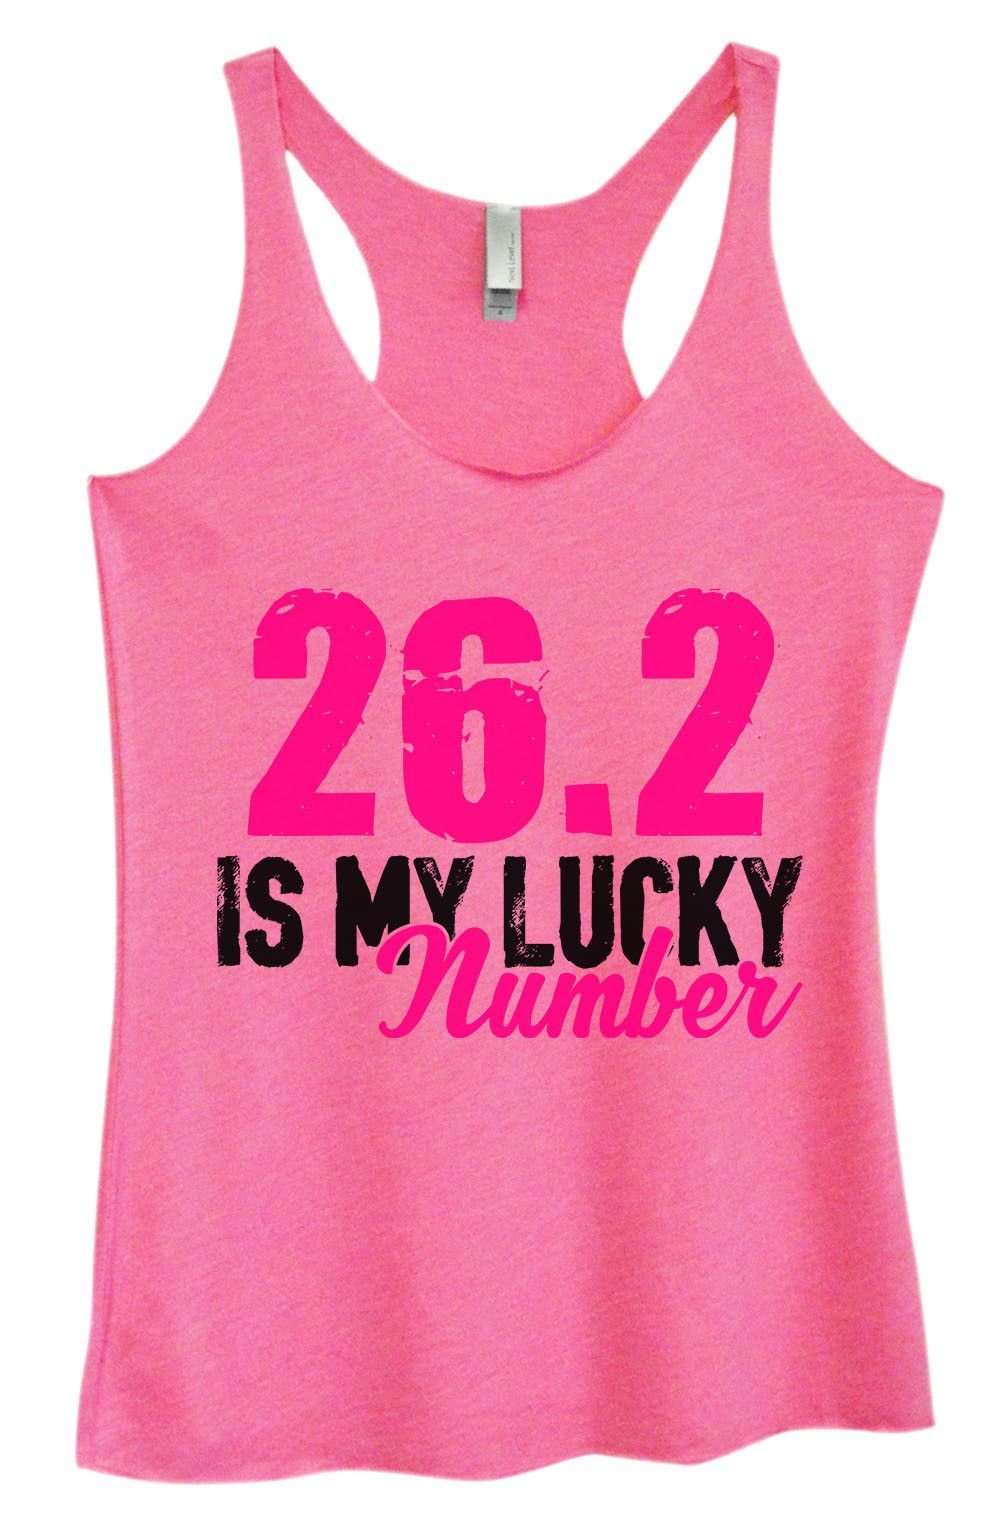 Womens Fashion Triblend Tank Top - 26.2 Is My Lucky Number - Tri-1382